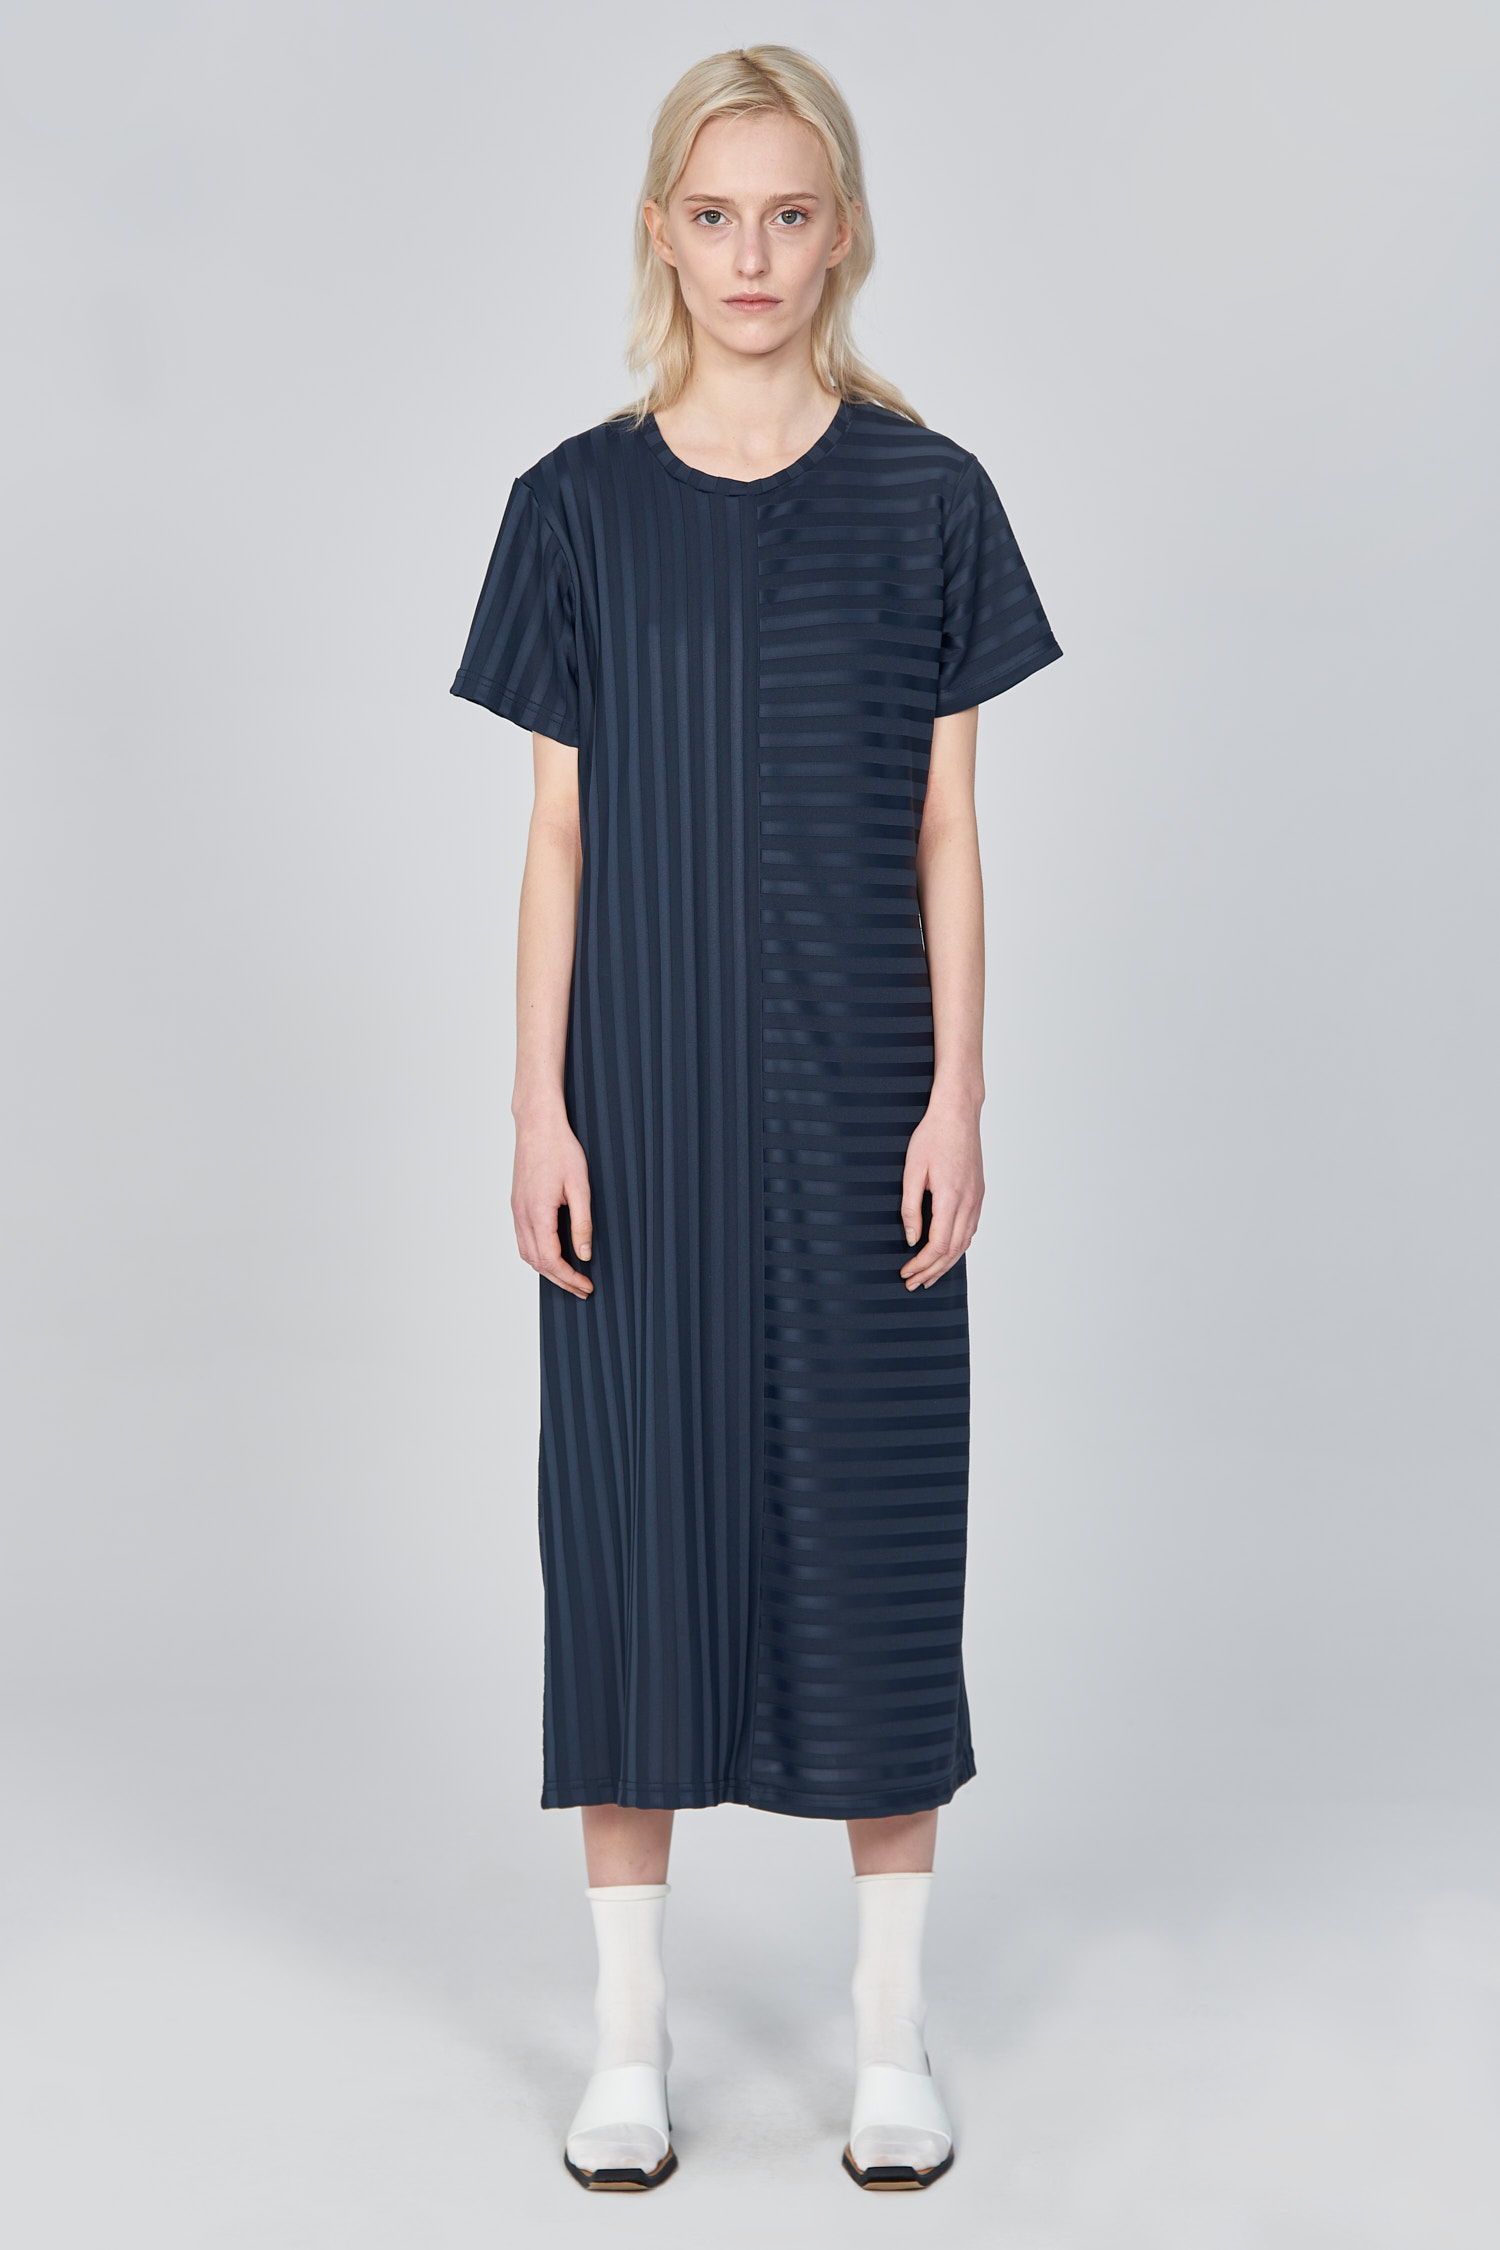 Acephala Ss21 Ribbed T Shirt Dress Front 2